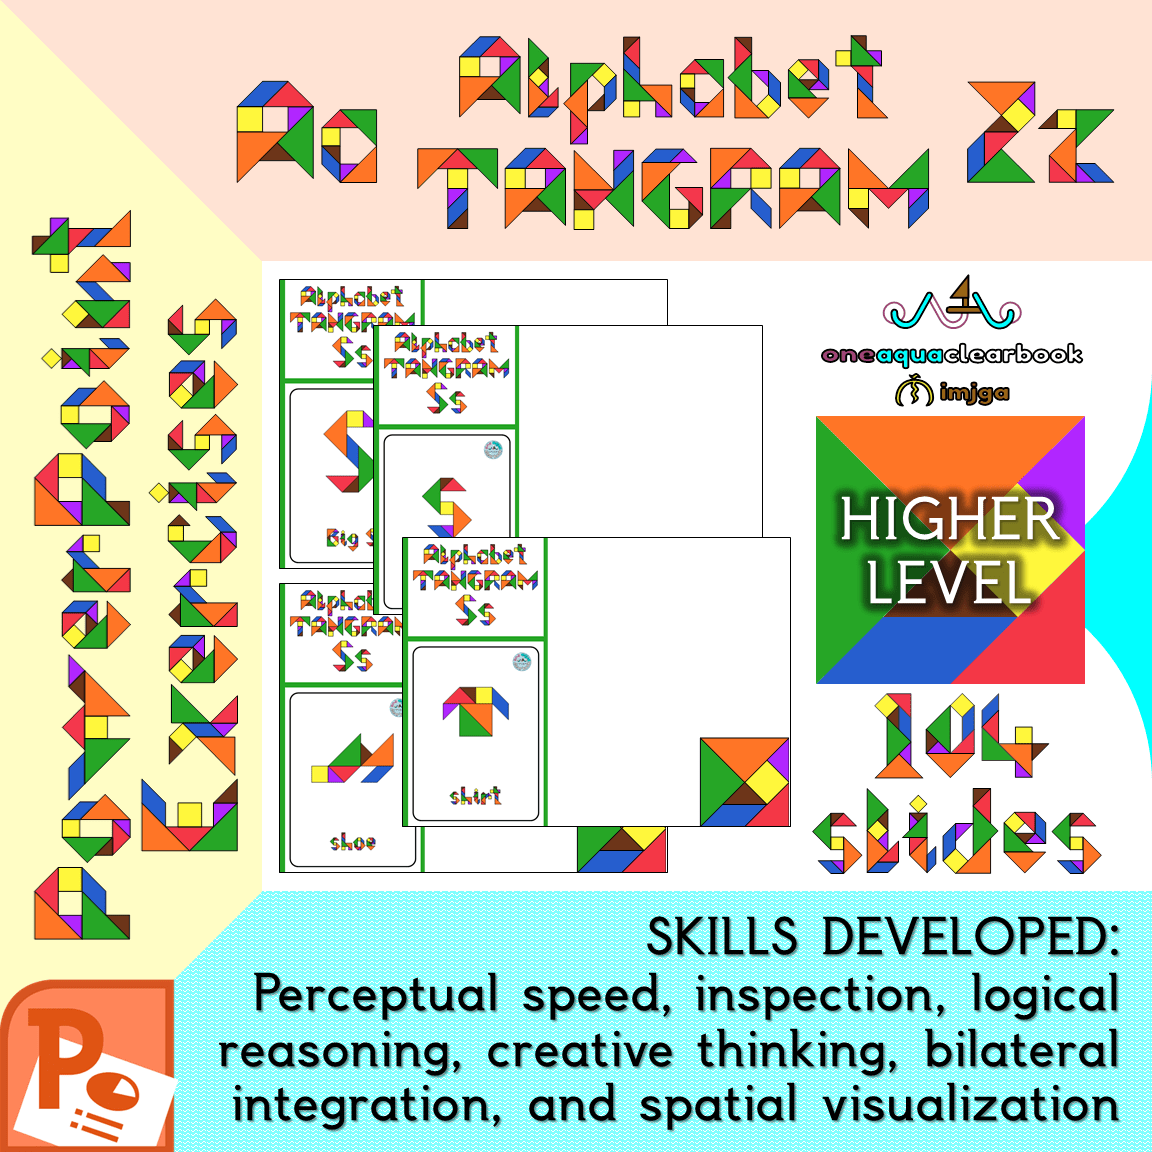 hight resolution of Alphabet Tangram Higher-Level PowerPoint Exercises Aa to Zz - Made By  Teachers